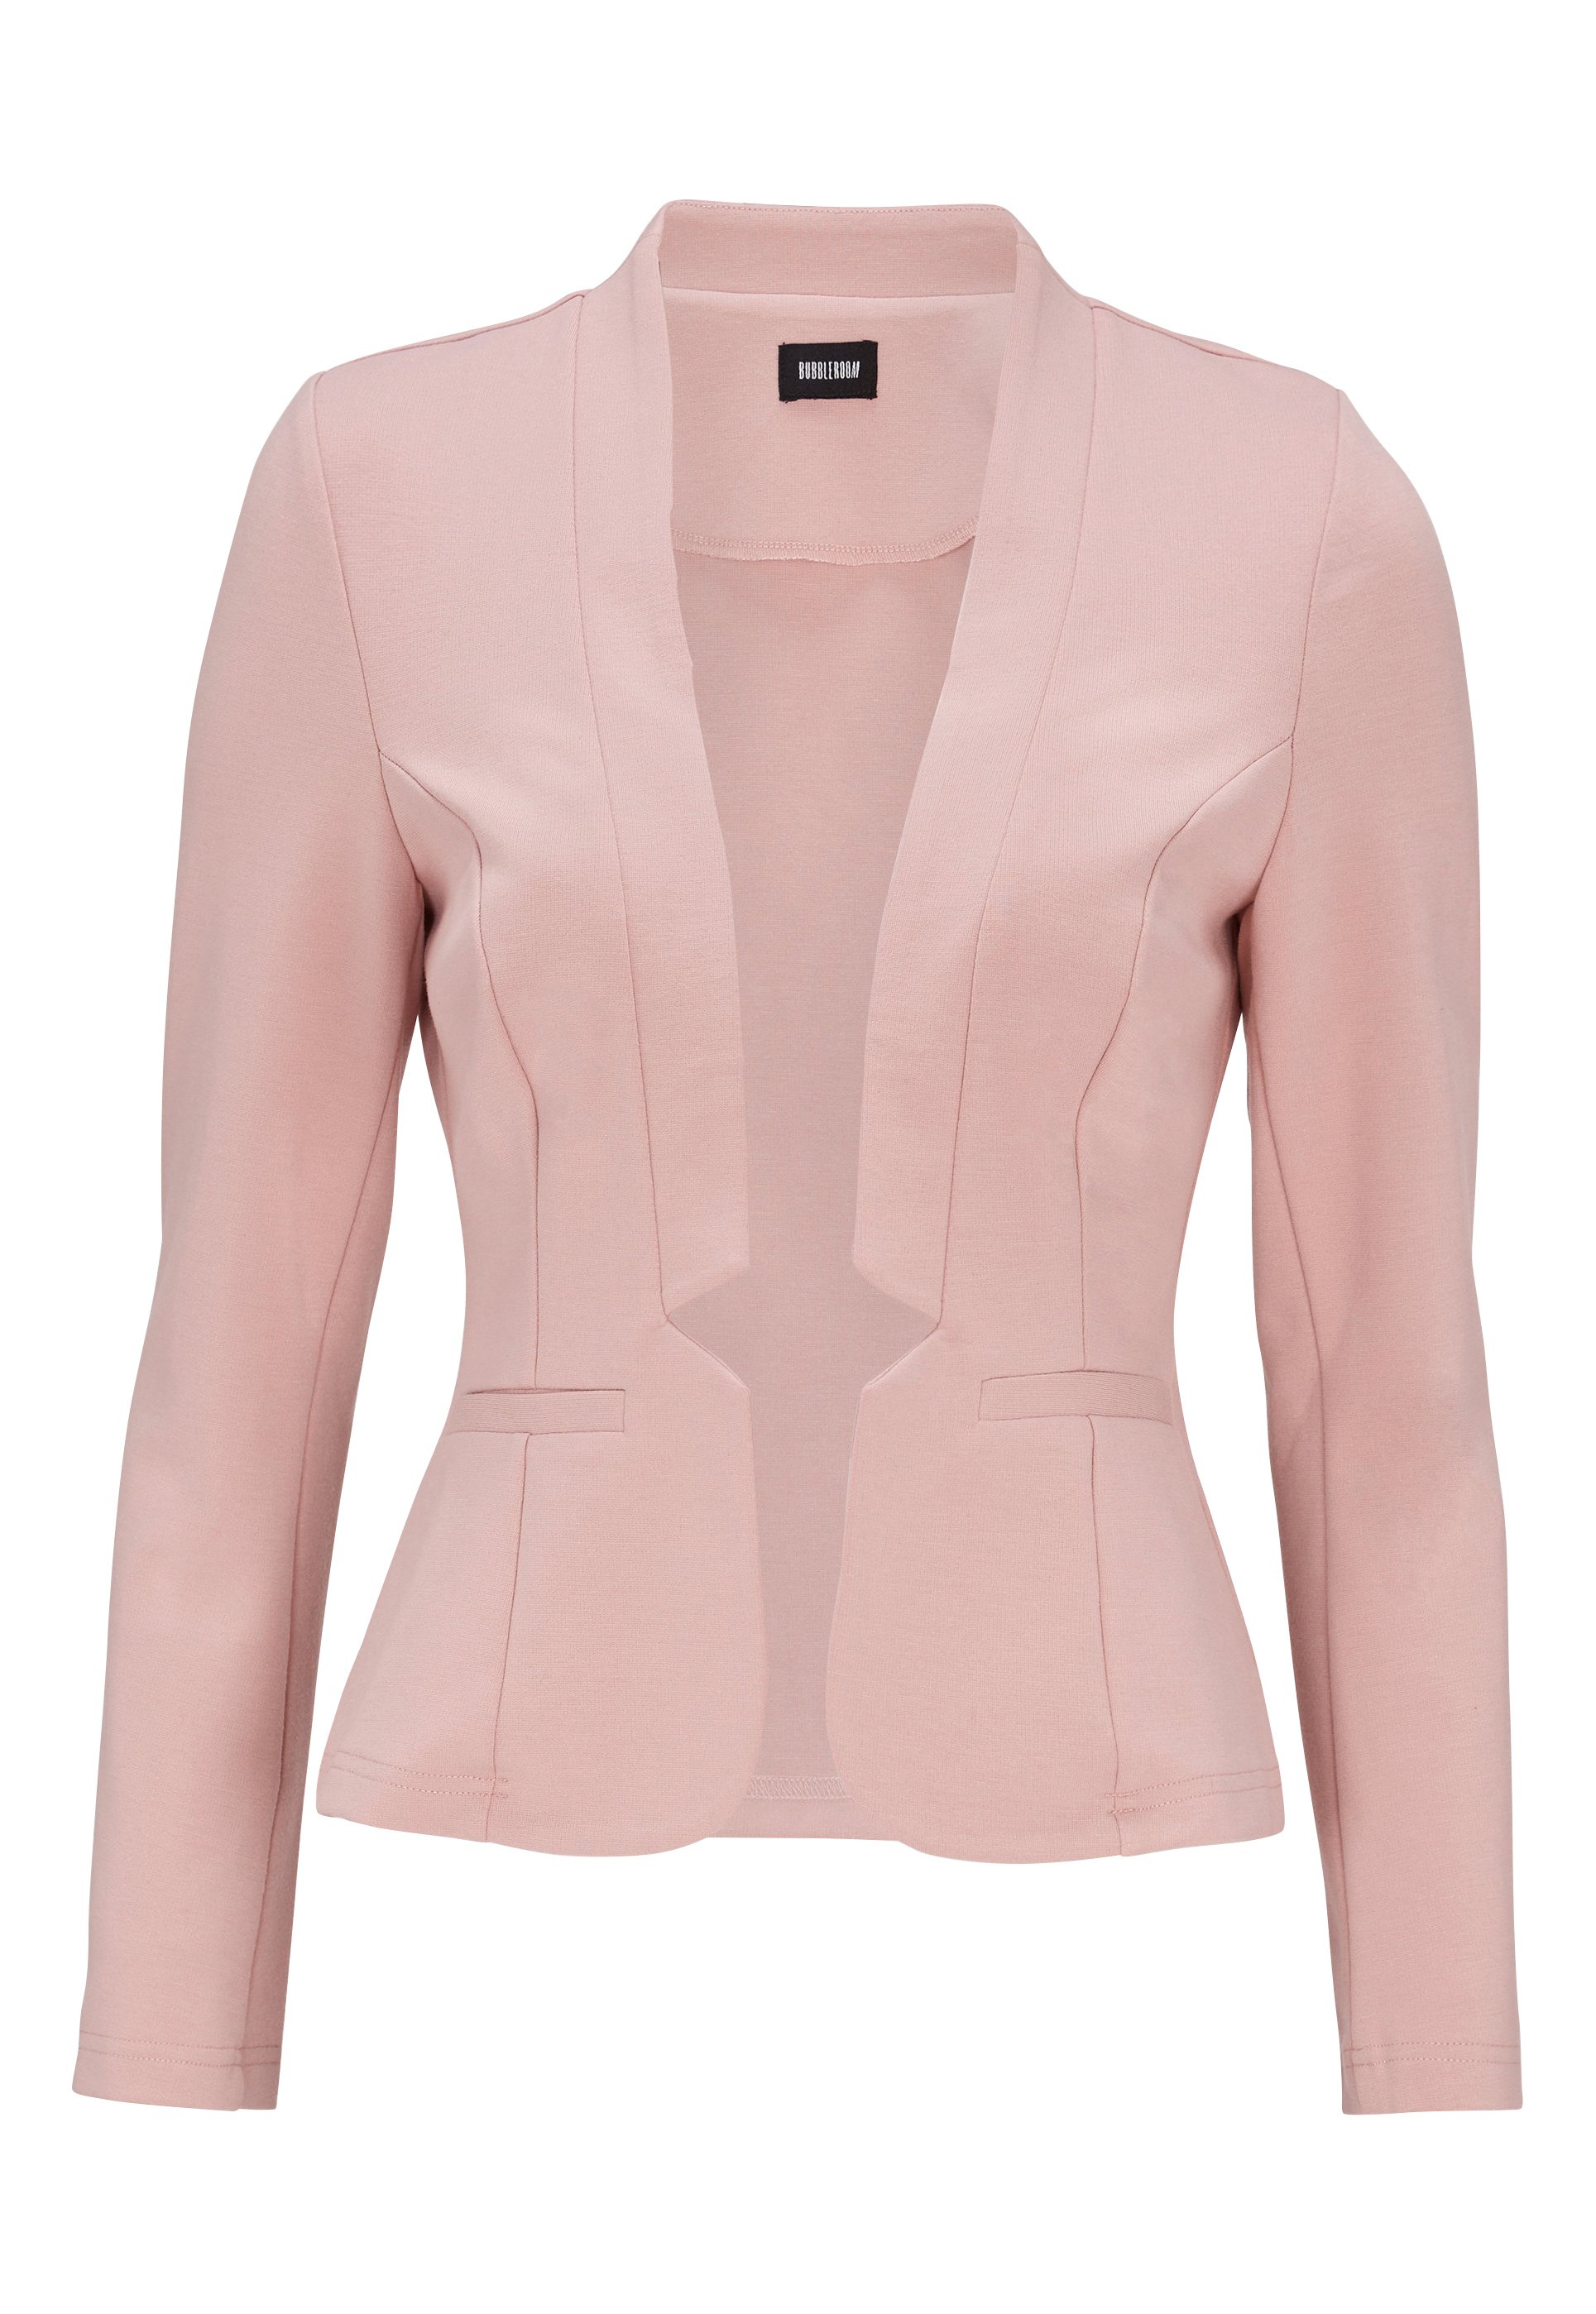 BUBBLEROOM Brienne blazer Dusty pink - Bubbleroom de64053701b80